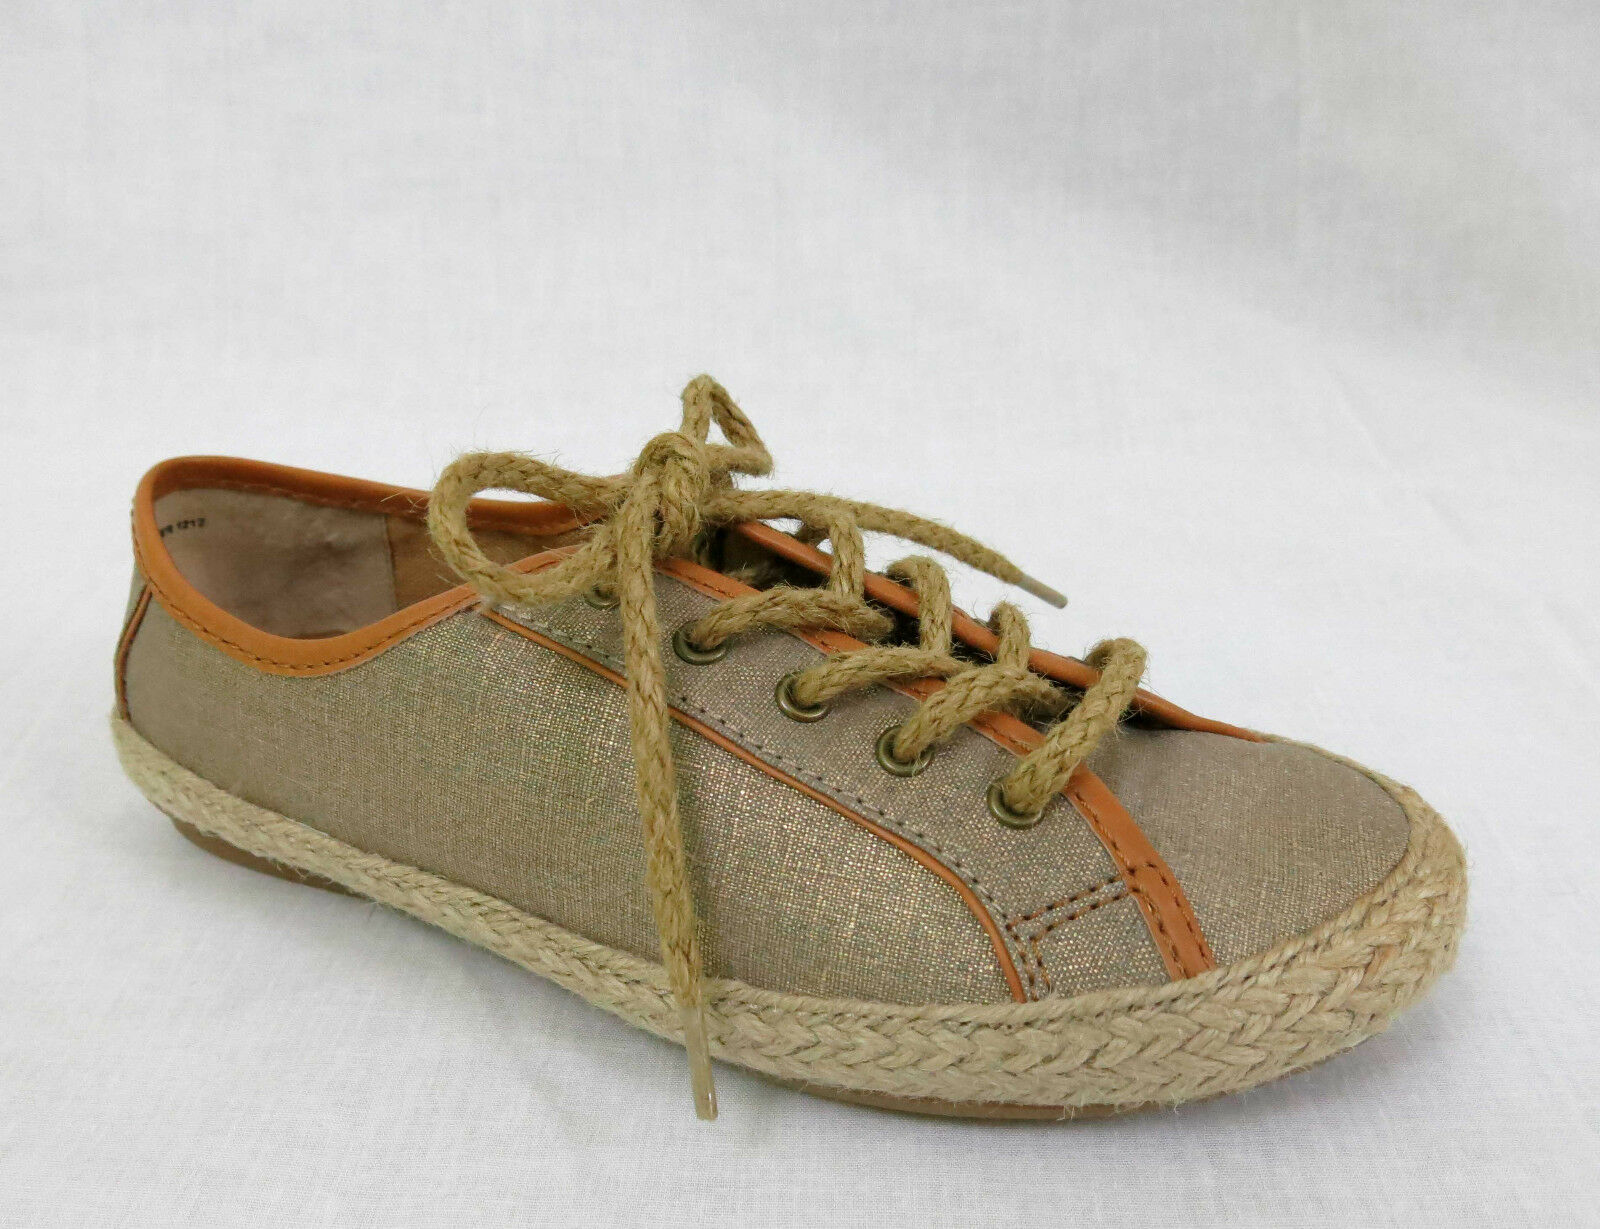 NINE WEST Samita Casual Sneakers Lace-Up Canvas Jute Gold Metallic 7 W